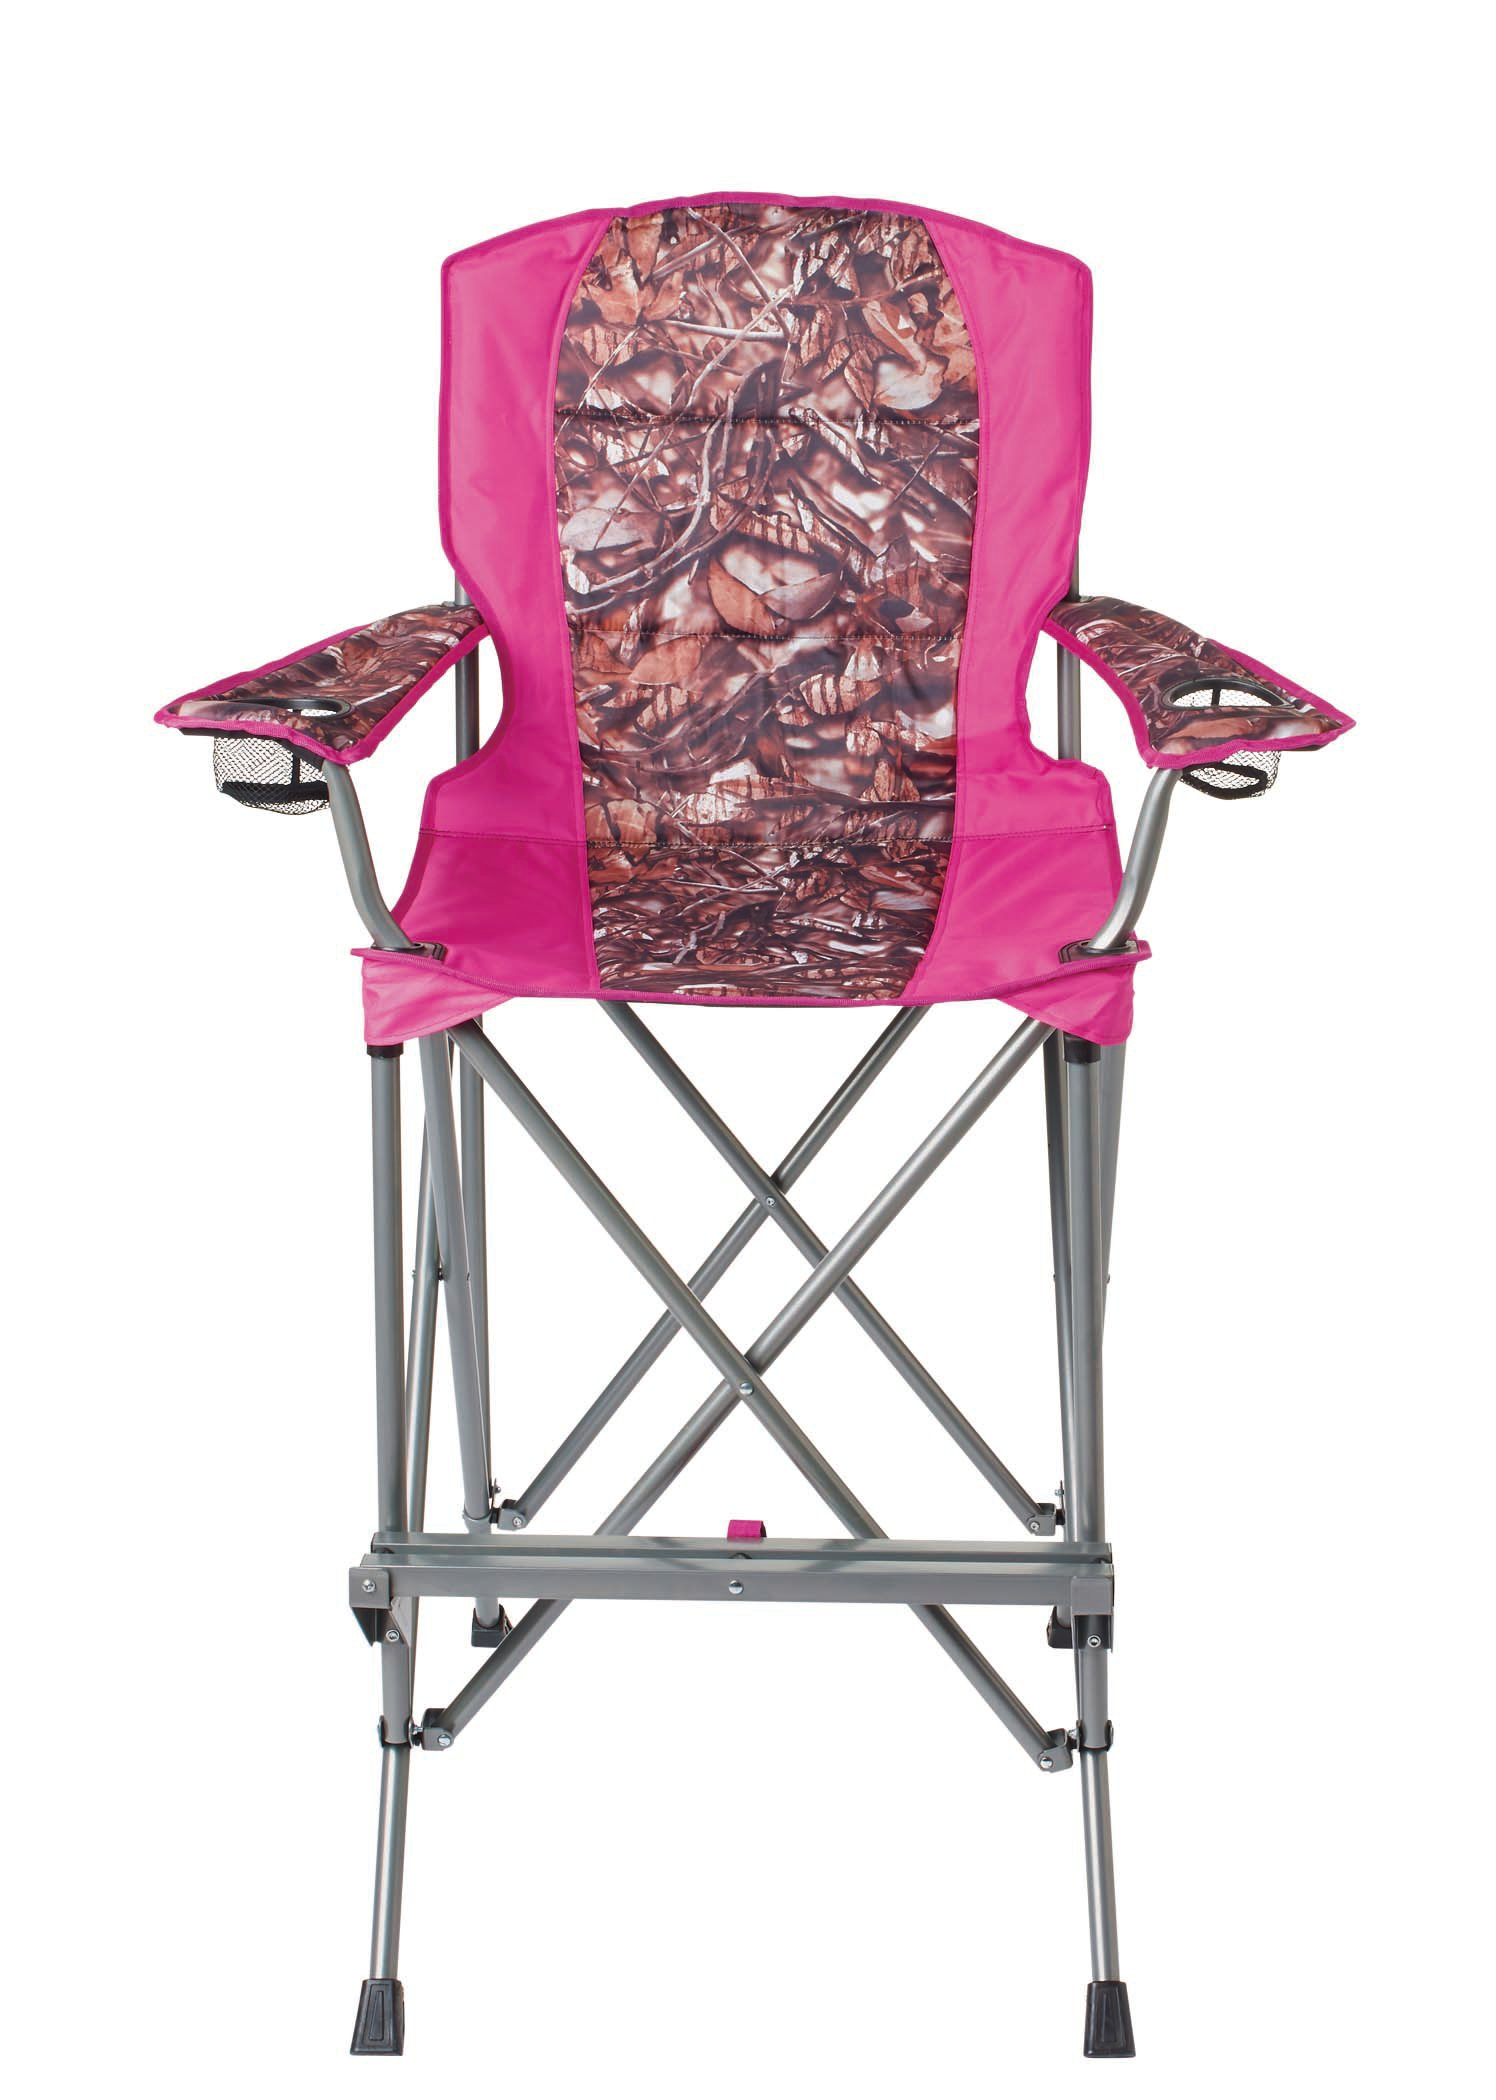 Outdoor Solutions Tall Boy Pink Camo Folding Chair   Shop Furniture At HEB